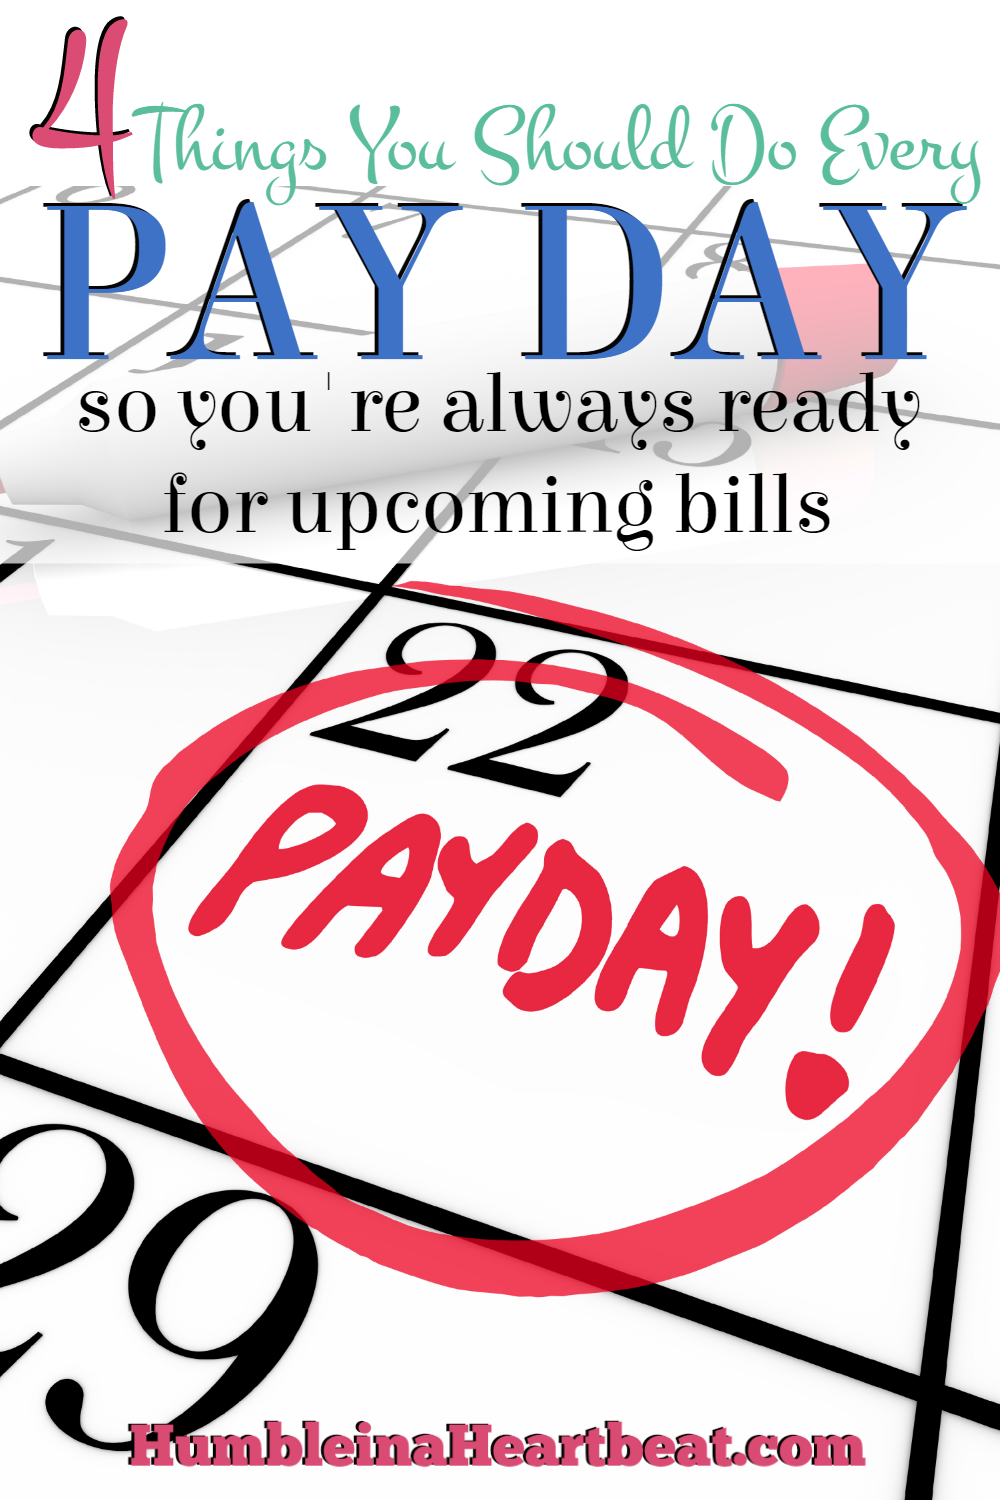 Tired of scrounging around for money a few days before you get paid? Start being diligent with your money the moment you receive it, and you'll soon find that you won't have to nickel and dime any more.